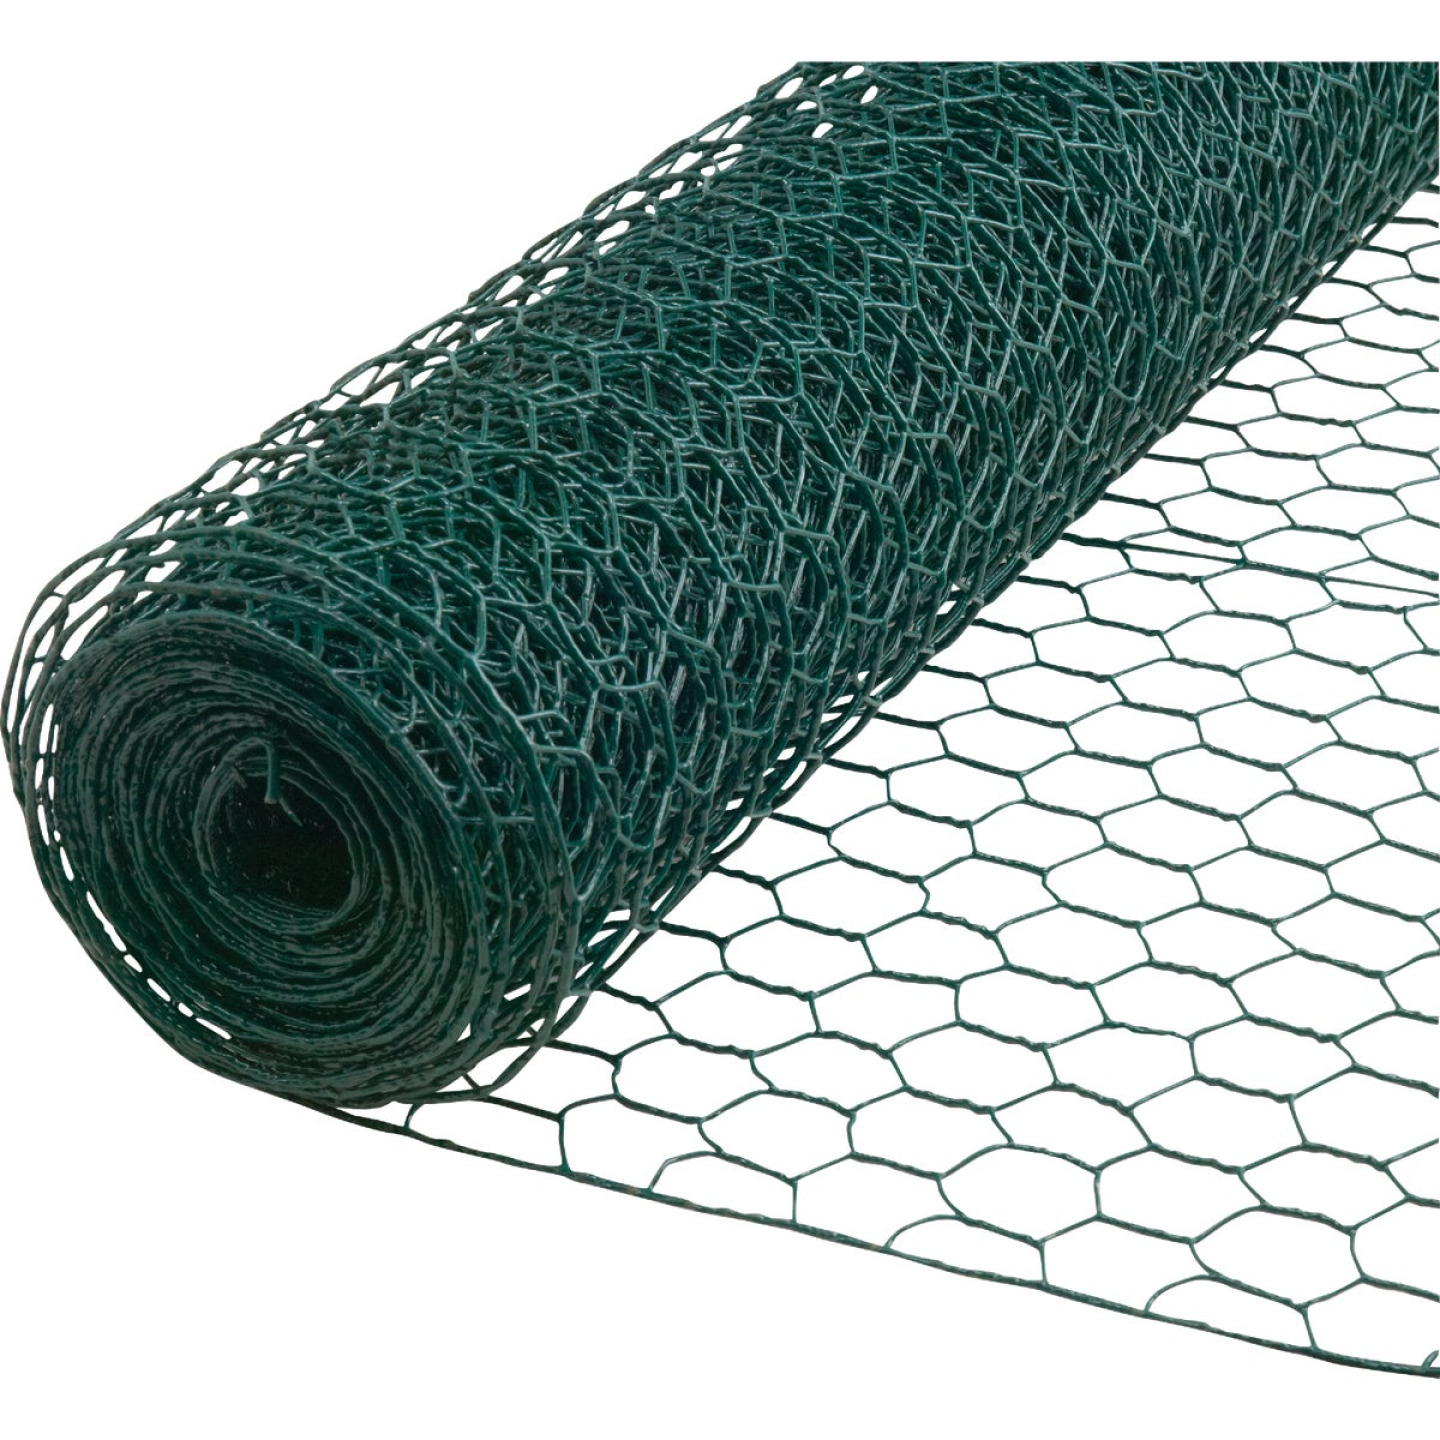 1 In. x 36 In. H. x 25 Ft. L. Green Vinyl-Coated Poultry Netting Image 1